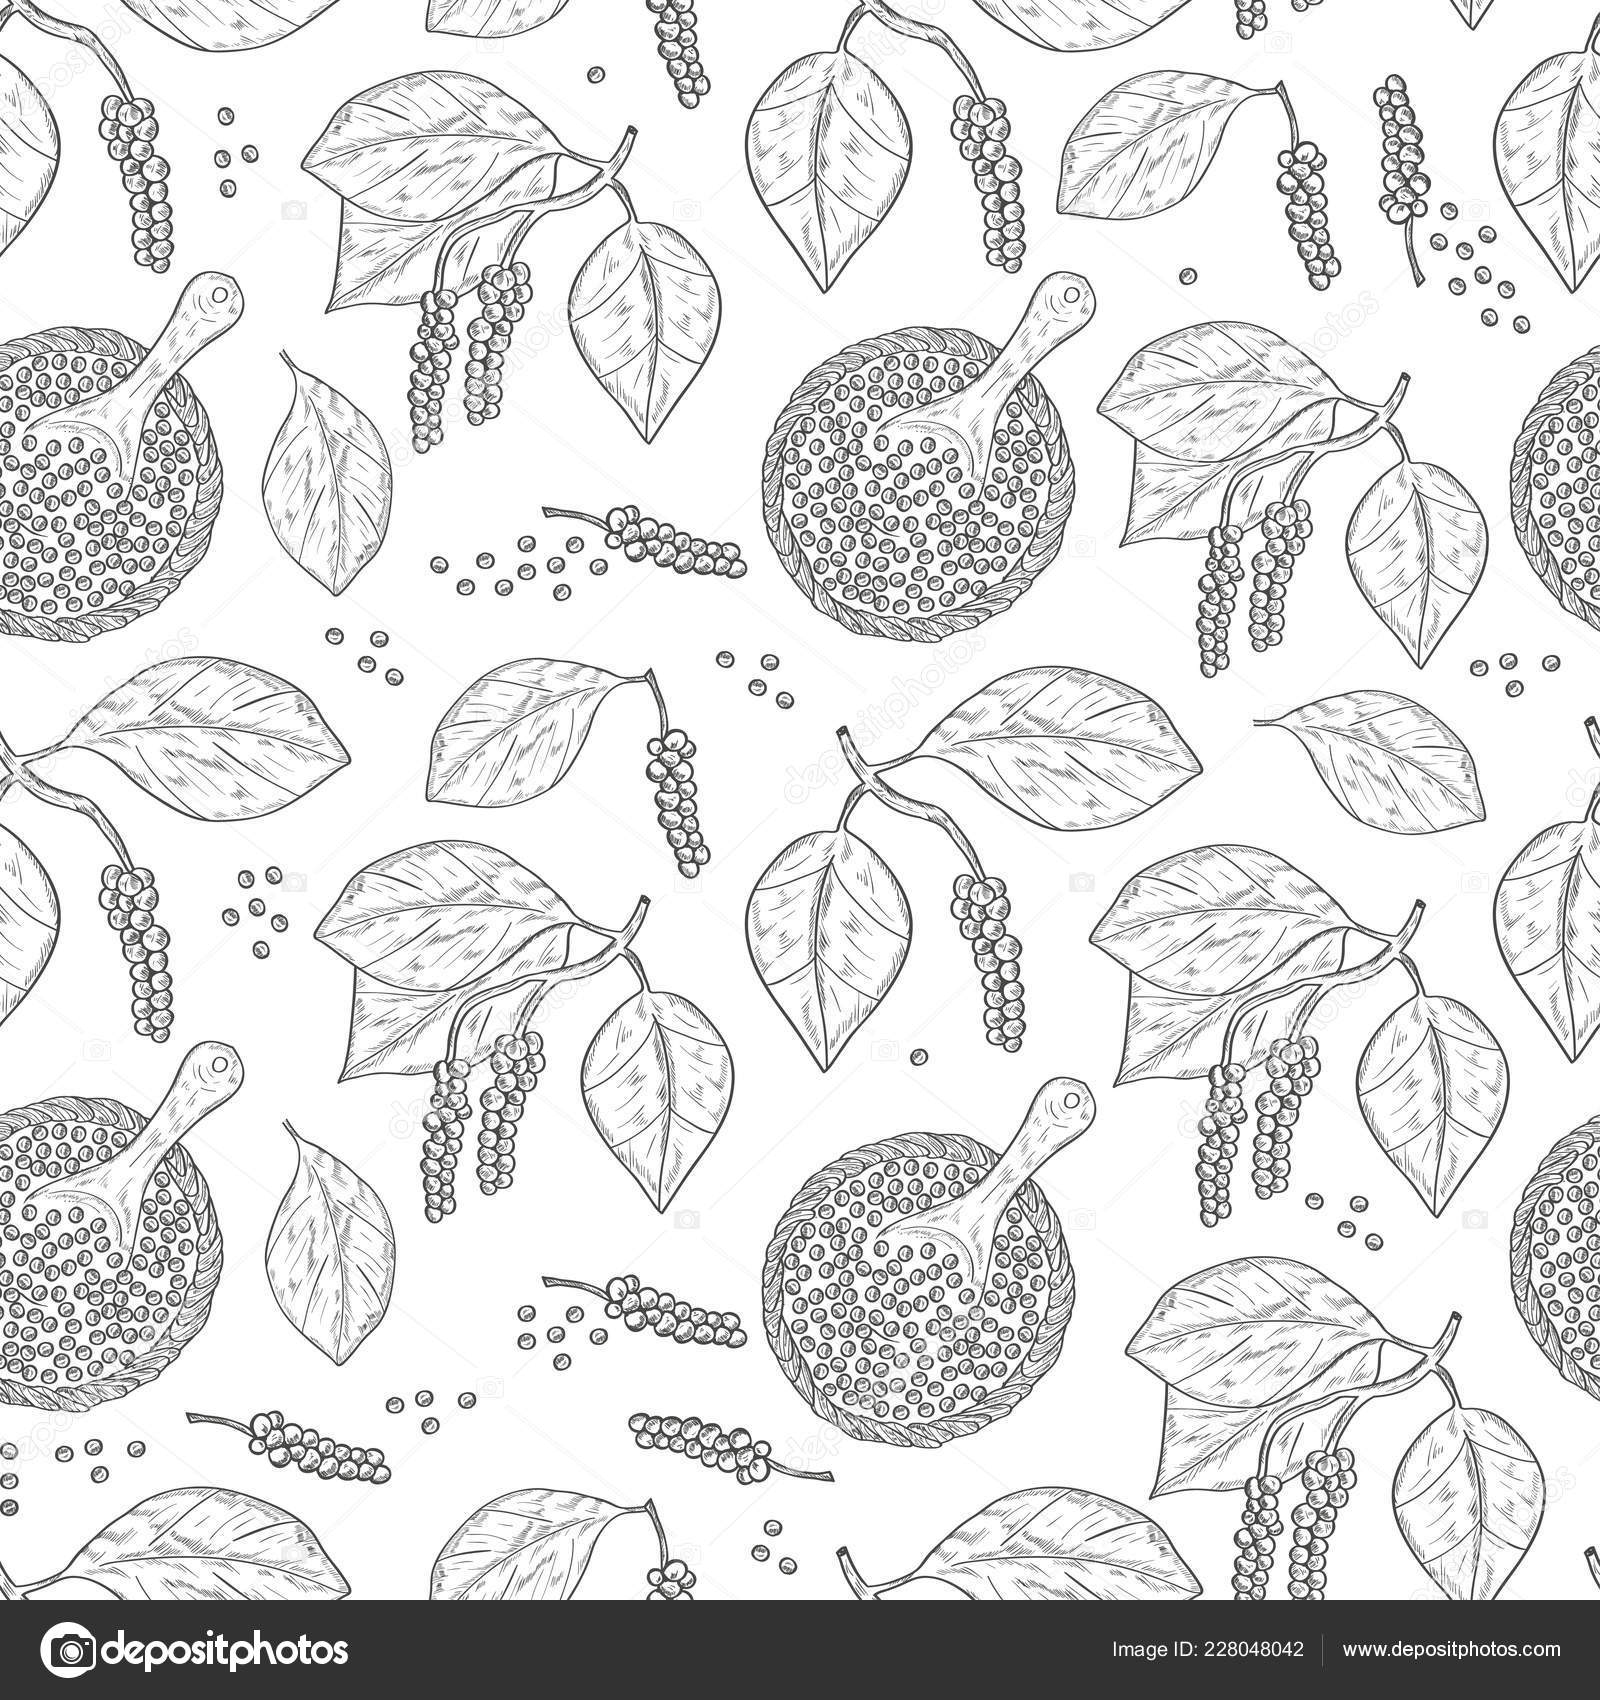 Pepper Plant Leaves Fruit Texture Wallpaper Seamless Sketch Monochrome On A White Background Vector Image By C Kosolga Vector Stock 228048042